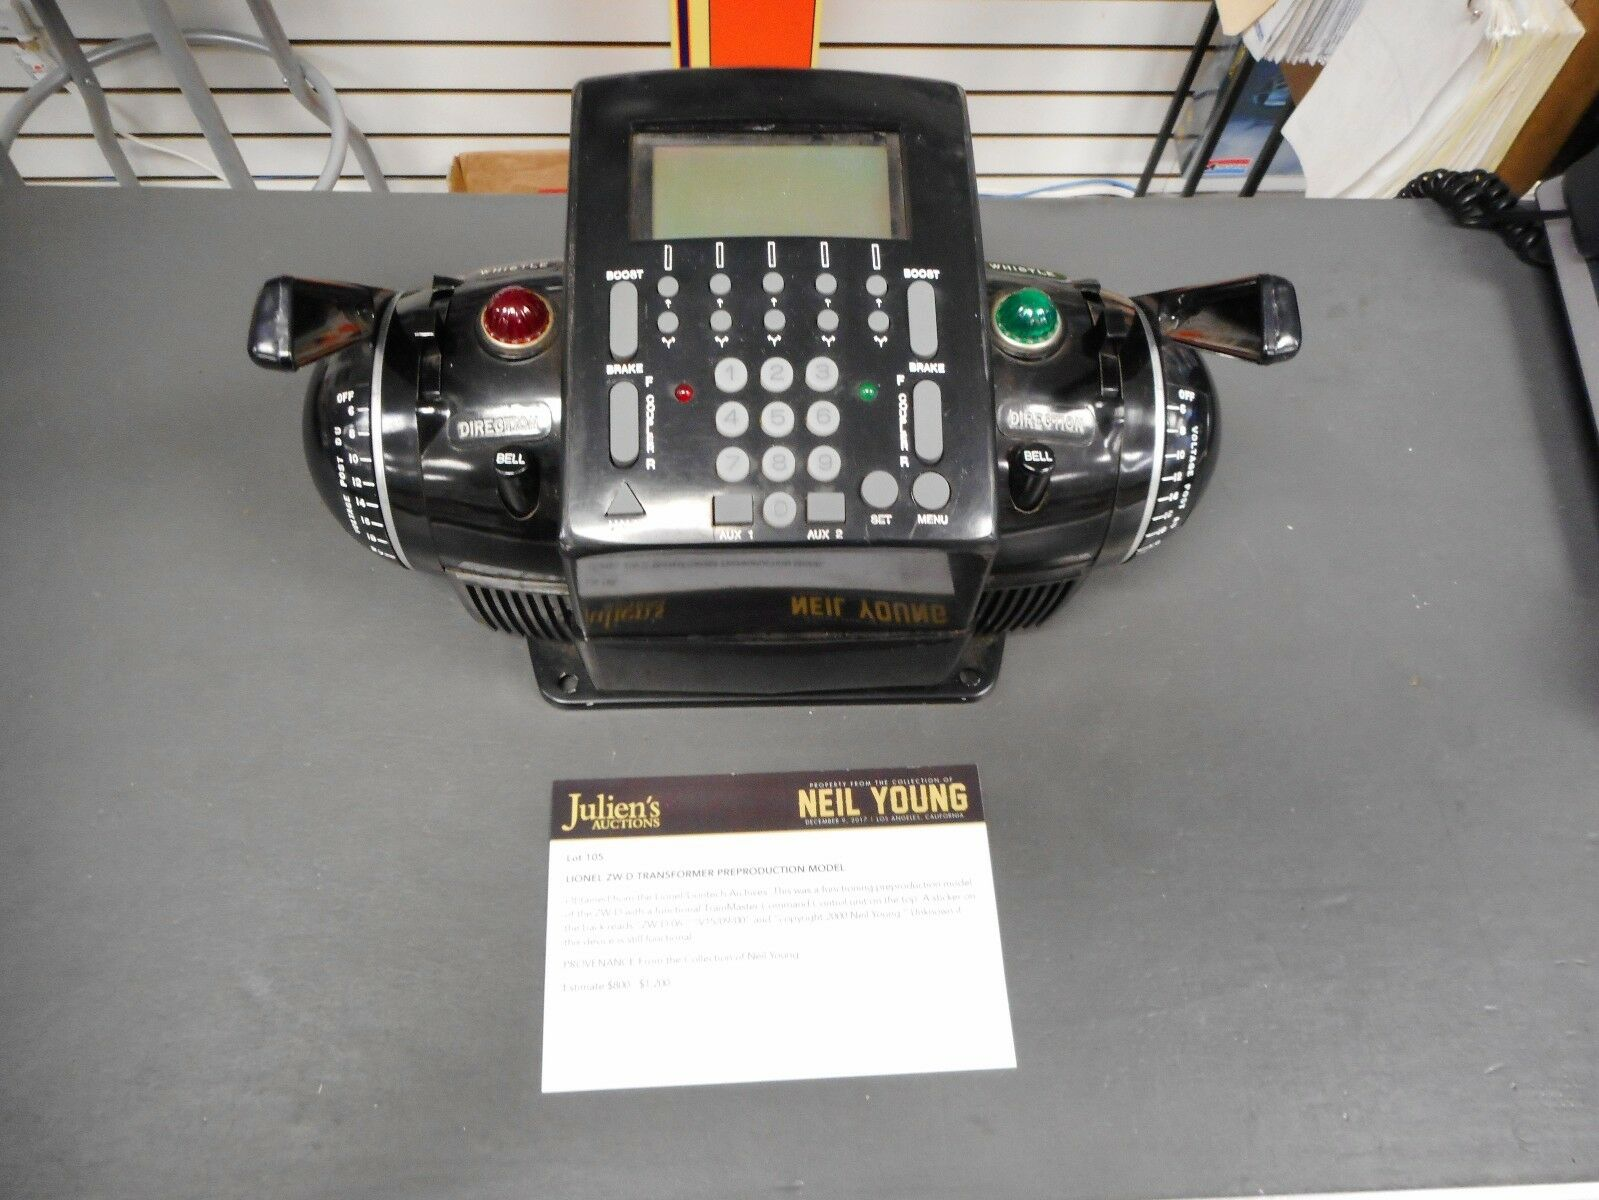 LIONEL ZW-D TRANSFORMER PREPRODUCTION MODEL (Neil Young Collection)